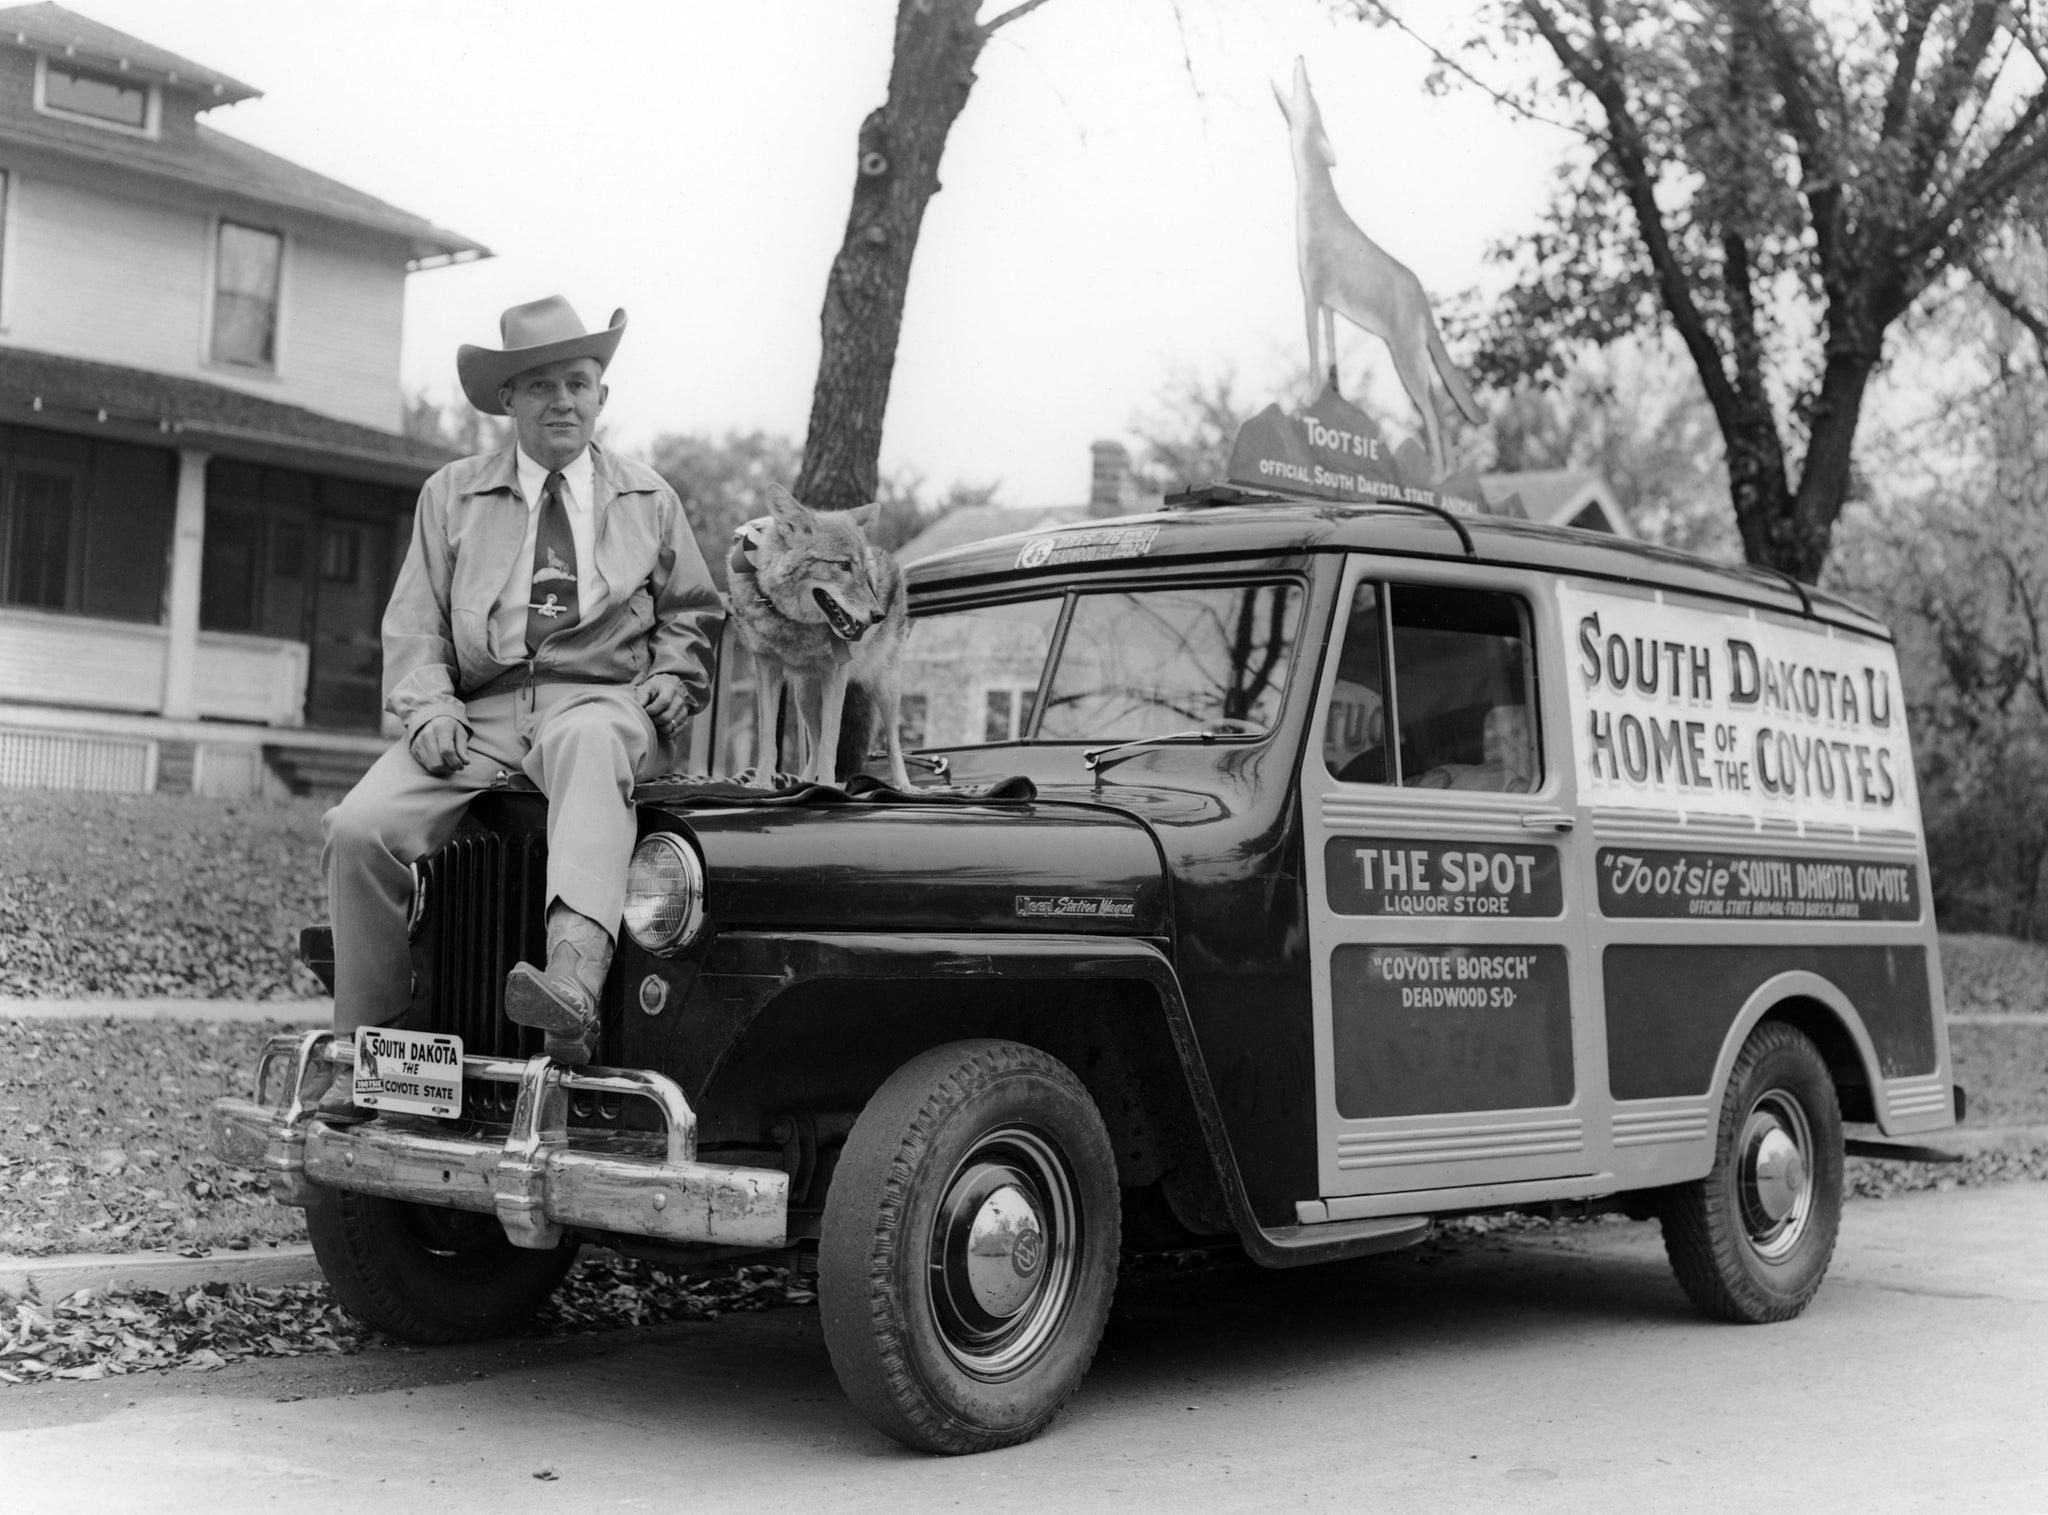 """Coyote"" Fred Borsch and Tootsie the Singing Coyote with the Spot Liquor Store wagon, Deadwood, 1953. Tootsie was dubbed South Dakota's State Animal by Gov. George Mickelson in 1949. -- Courtesy Deadwood History, Inc."